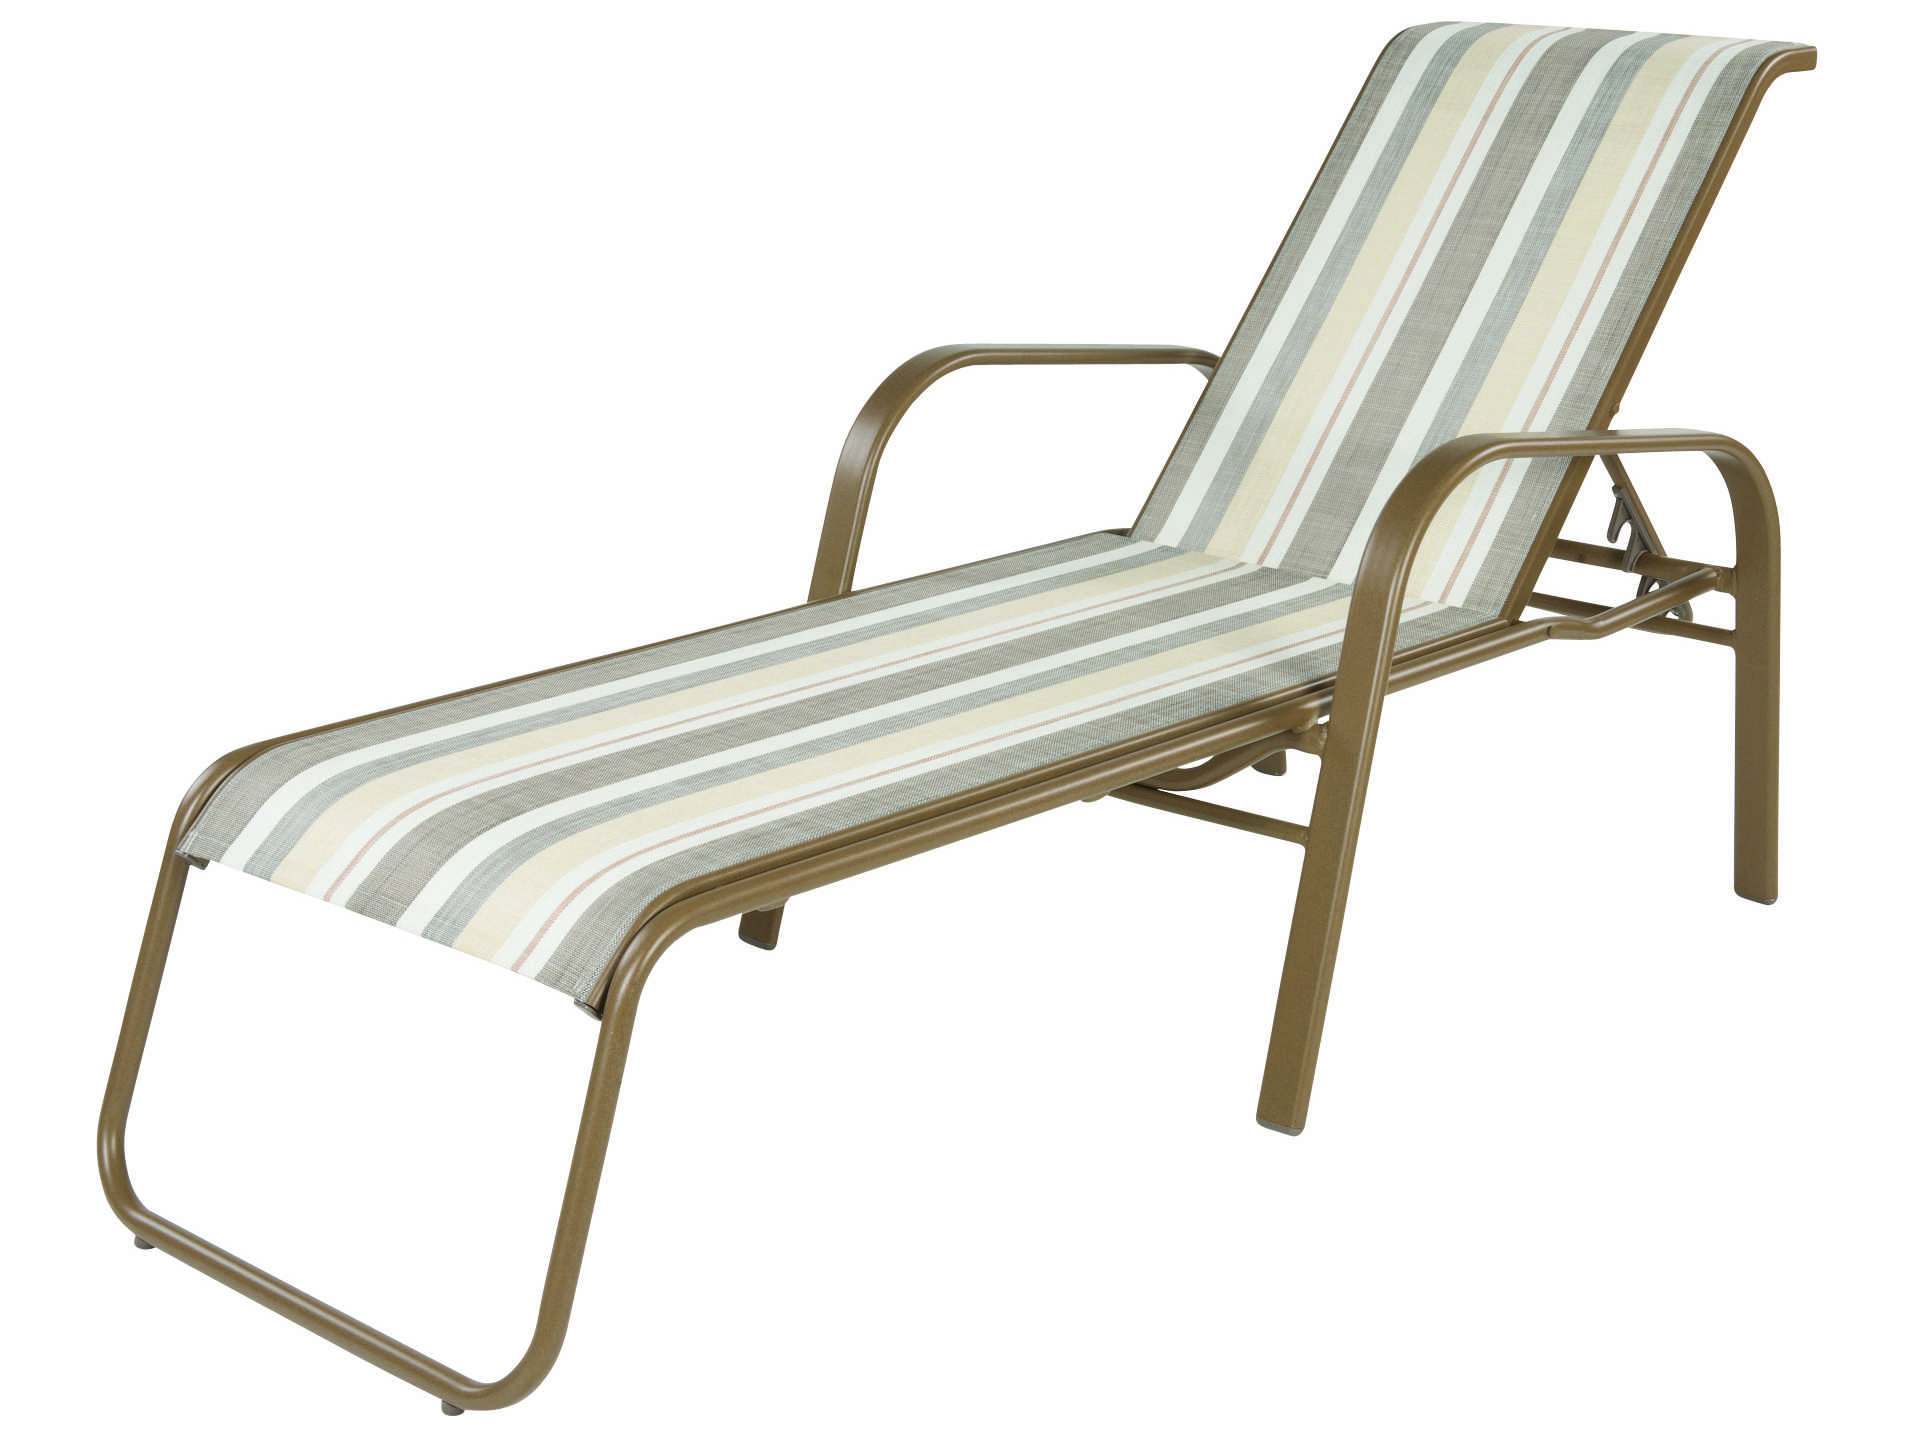 Windward design group anna maria sling aluminum chaise for Aluminum sling chaise lounge